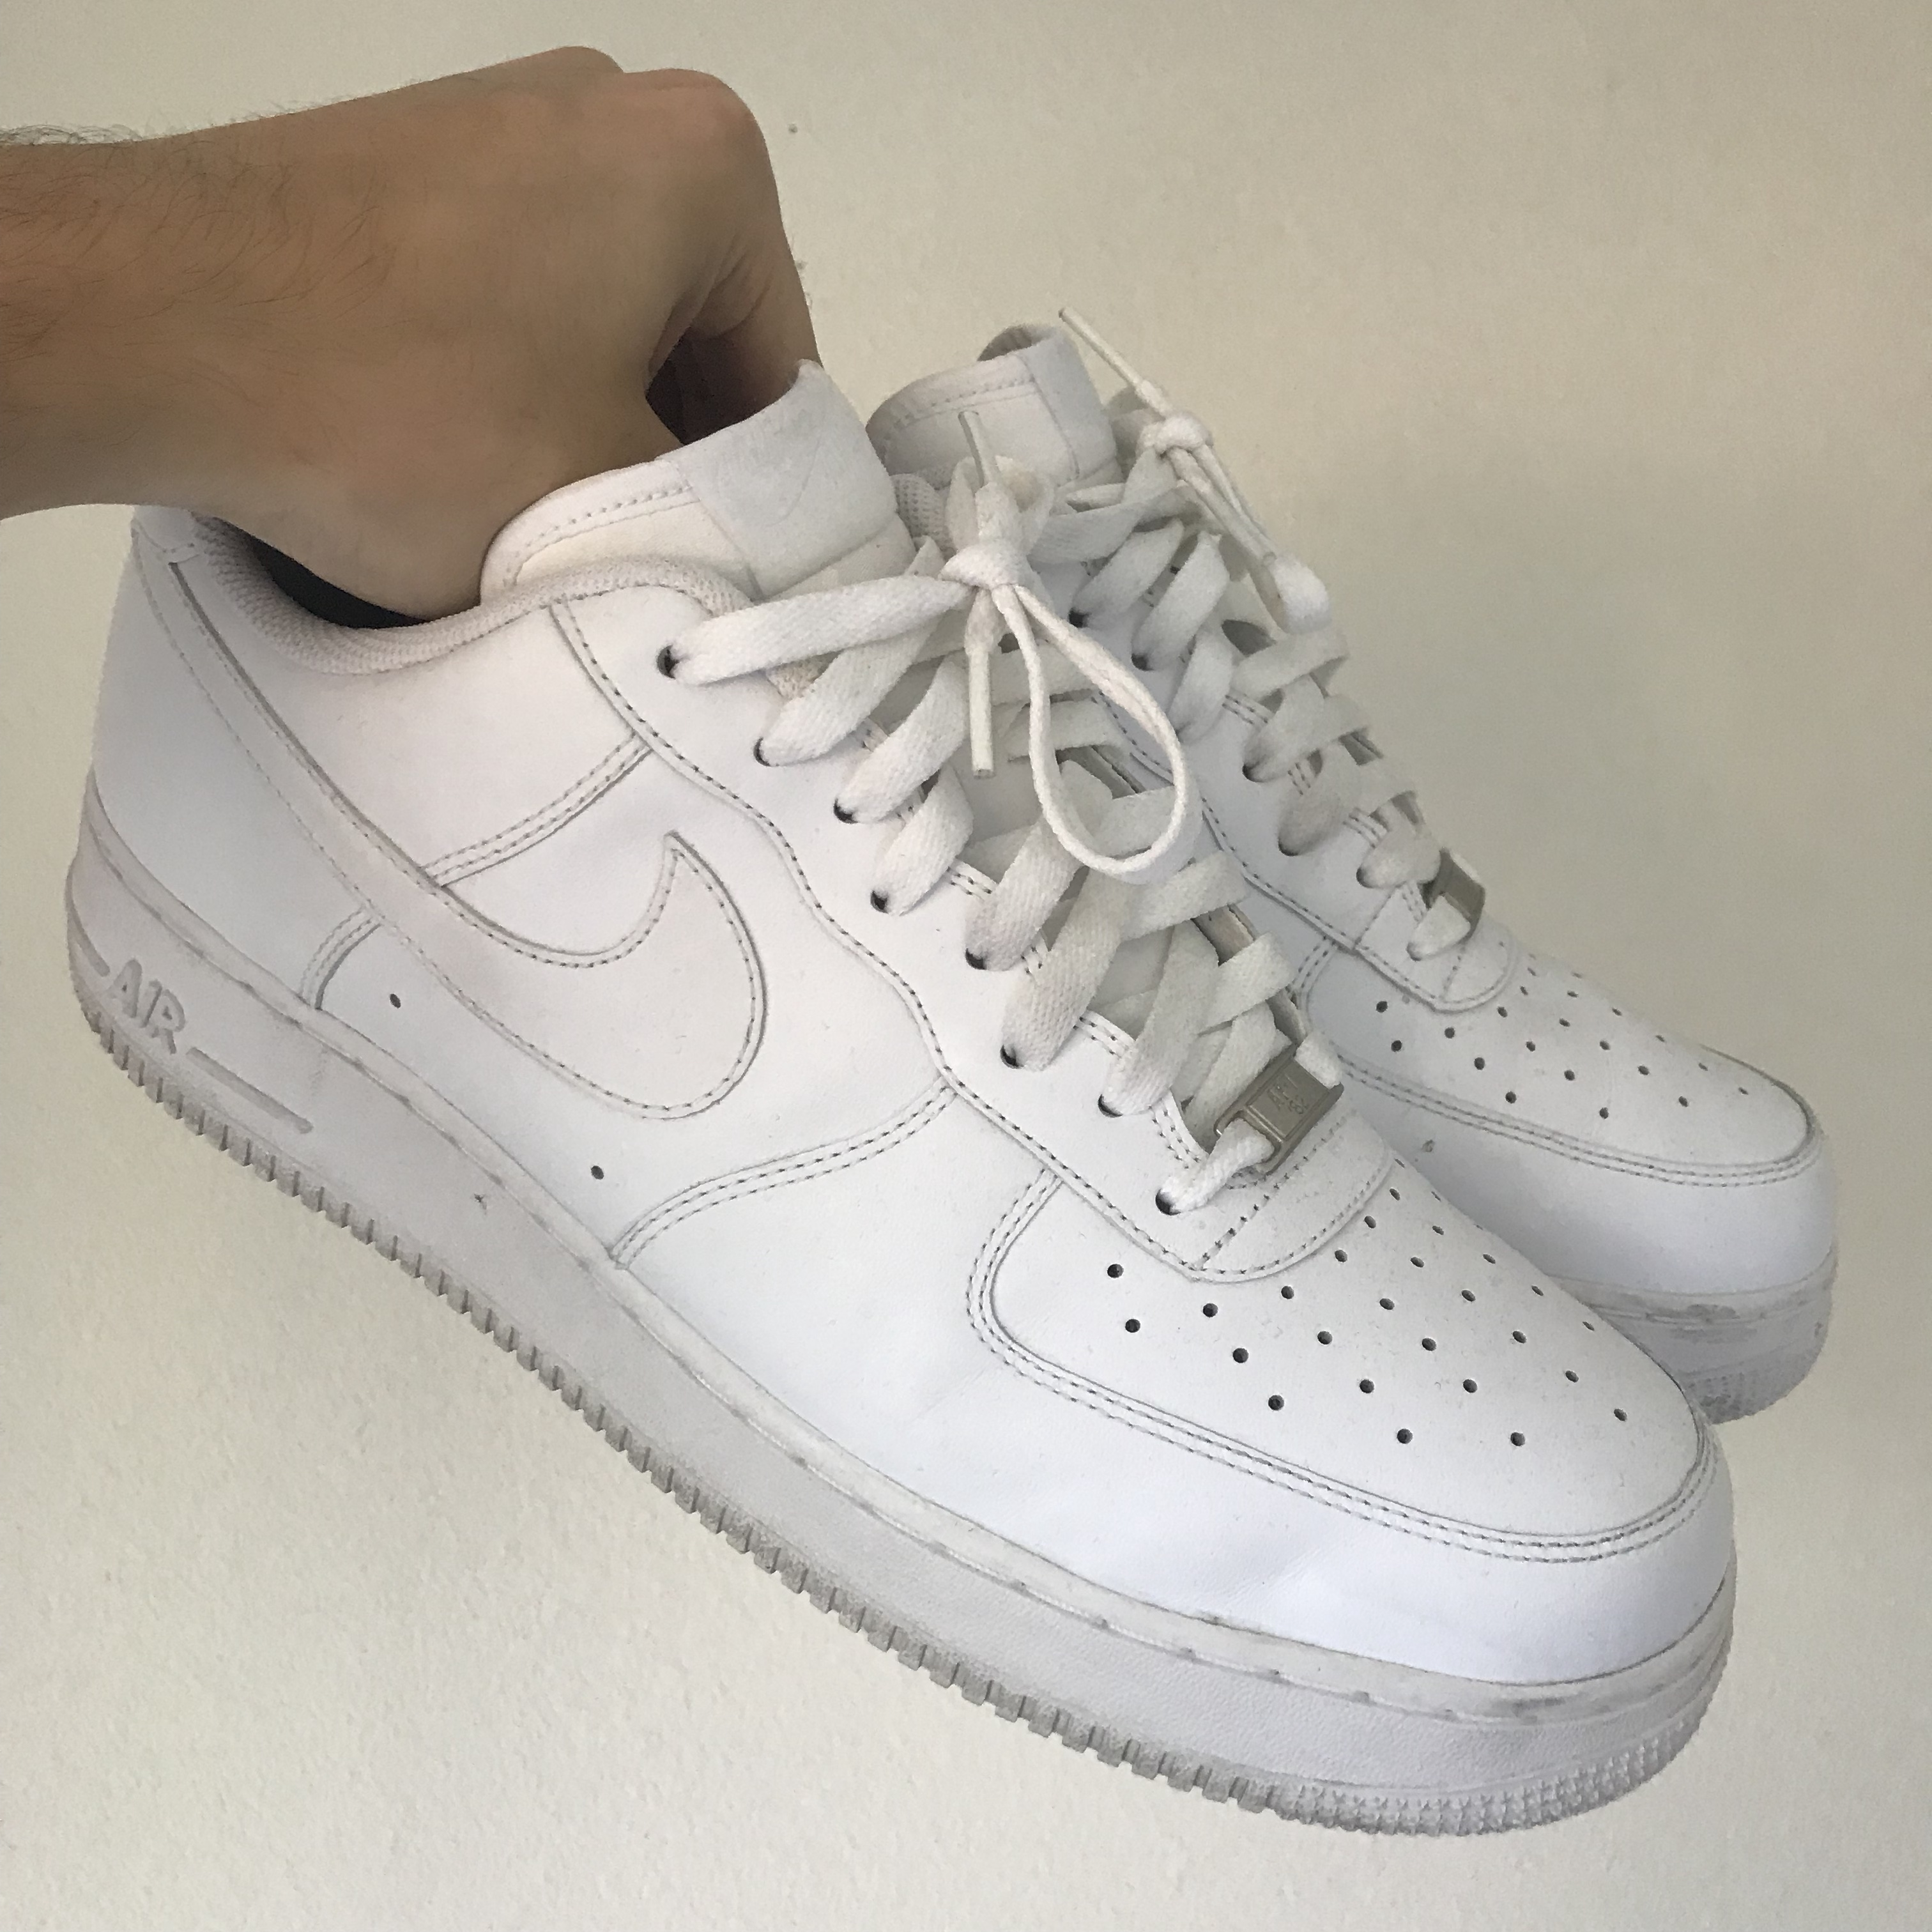 NIKE AF1 // Air Force 1 white size: 12